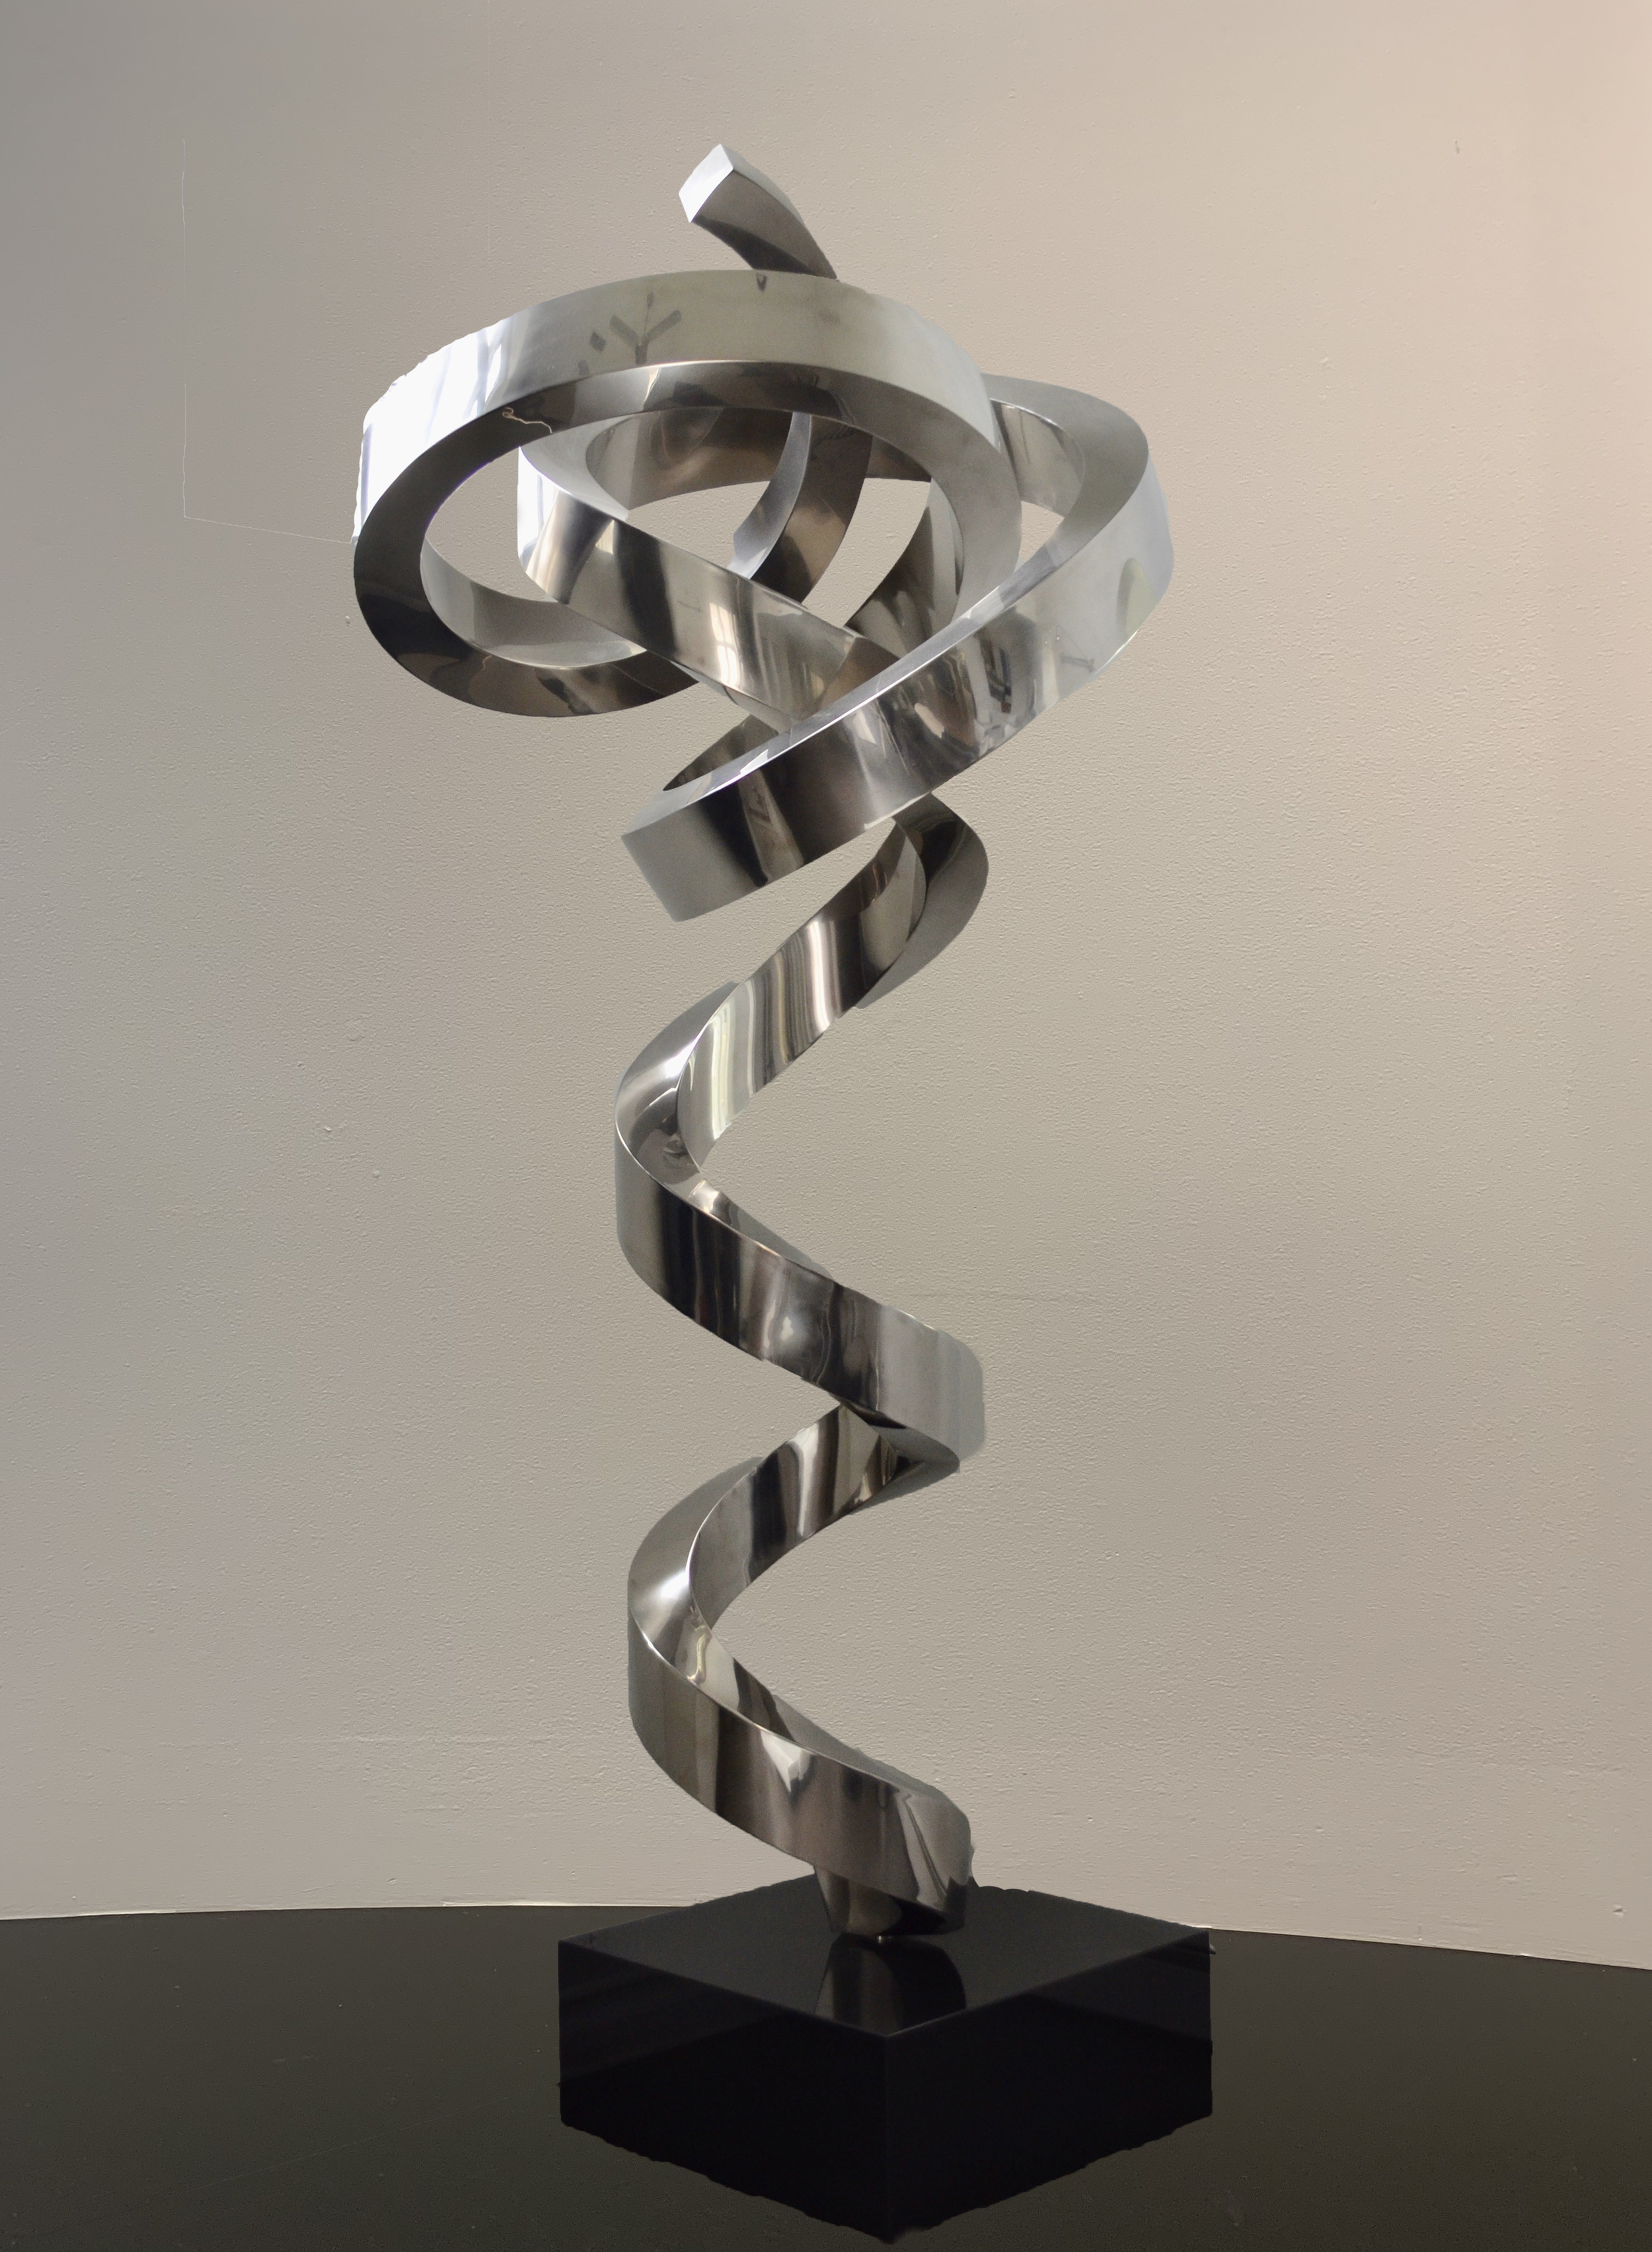 stainless_steel_sculpture_ascension_gino_miles3